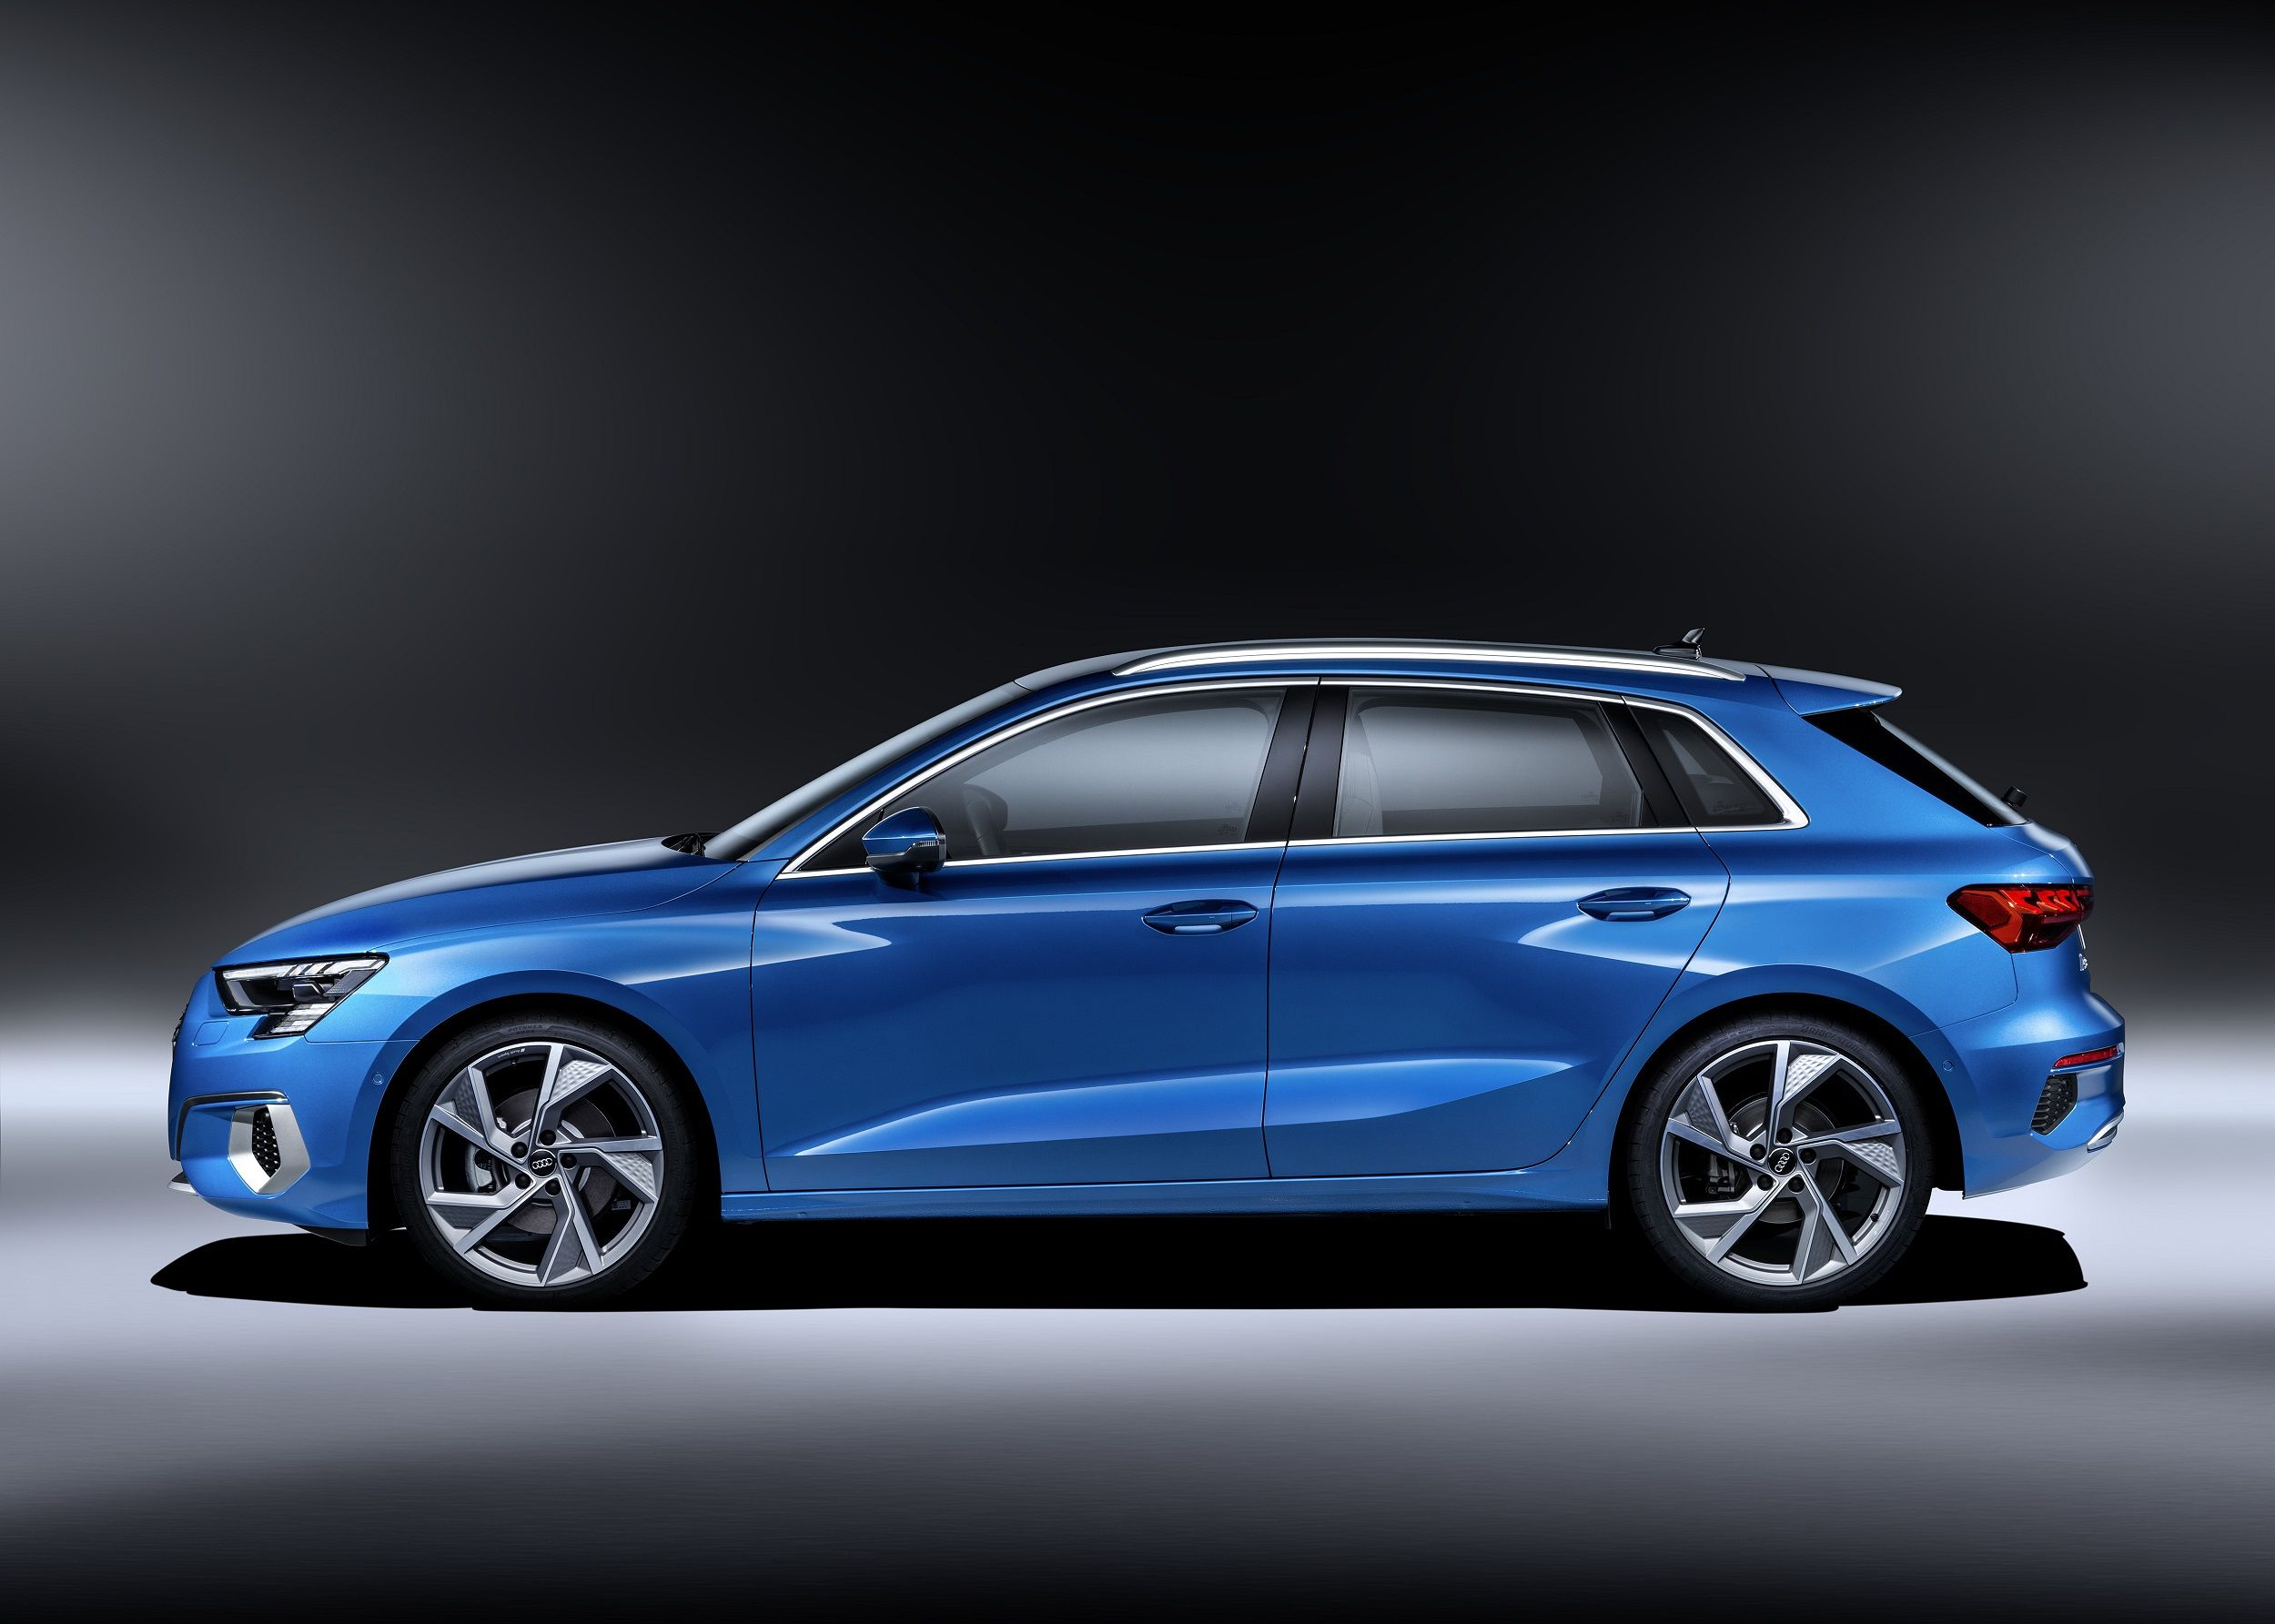 2020 Audi A3 Sportback introduced with more tech, new